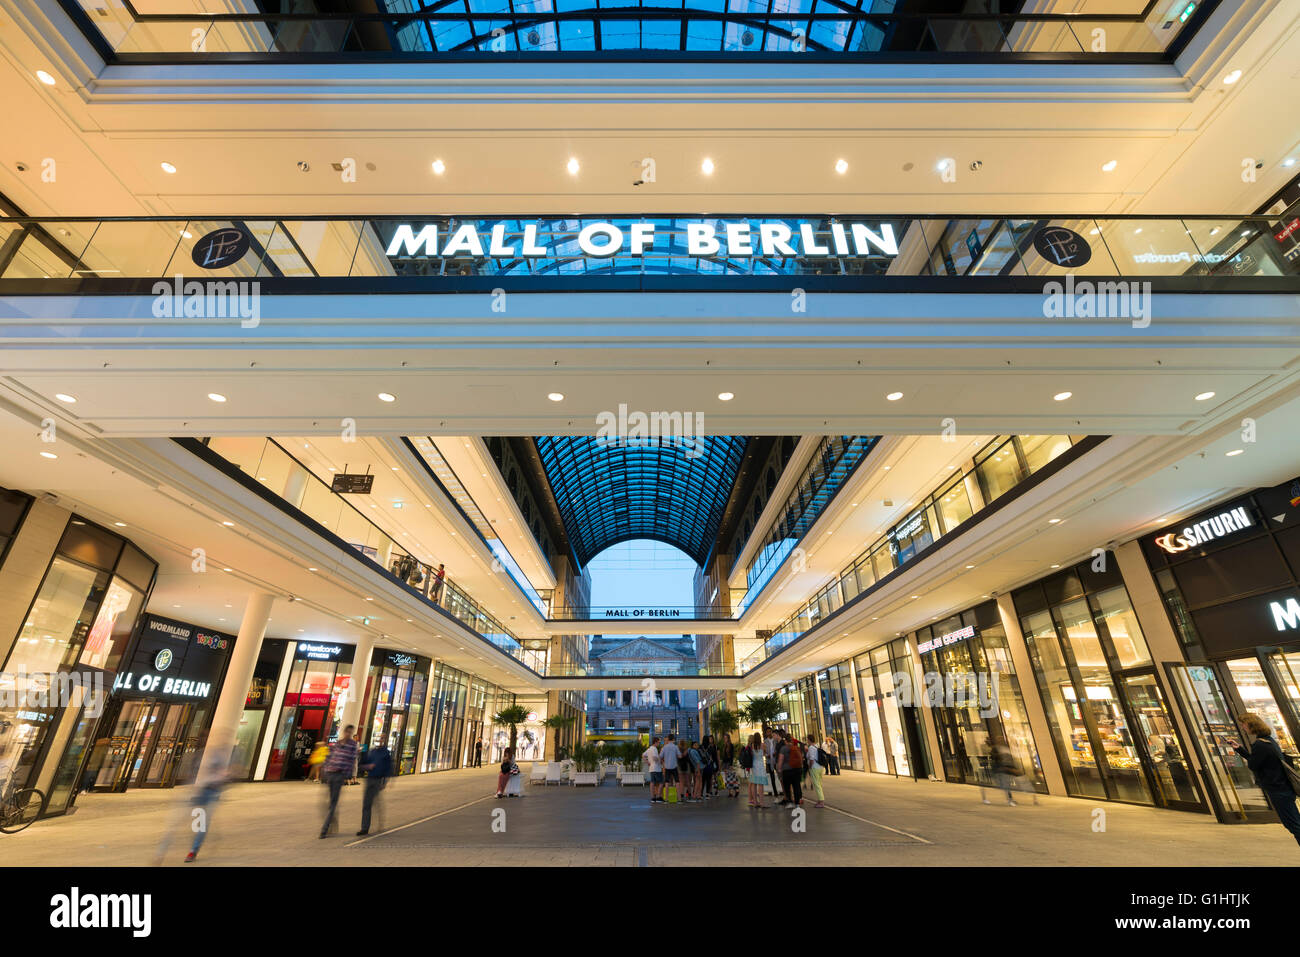 berlin shopping stockfotos berlin shopping bilder alamy. Black Bedroom Furniture Sets. Home Design Ideas